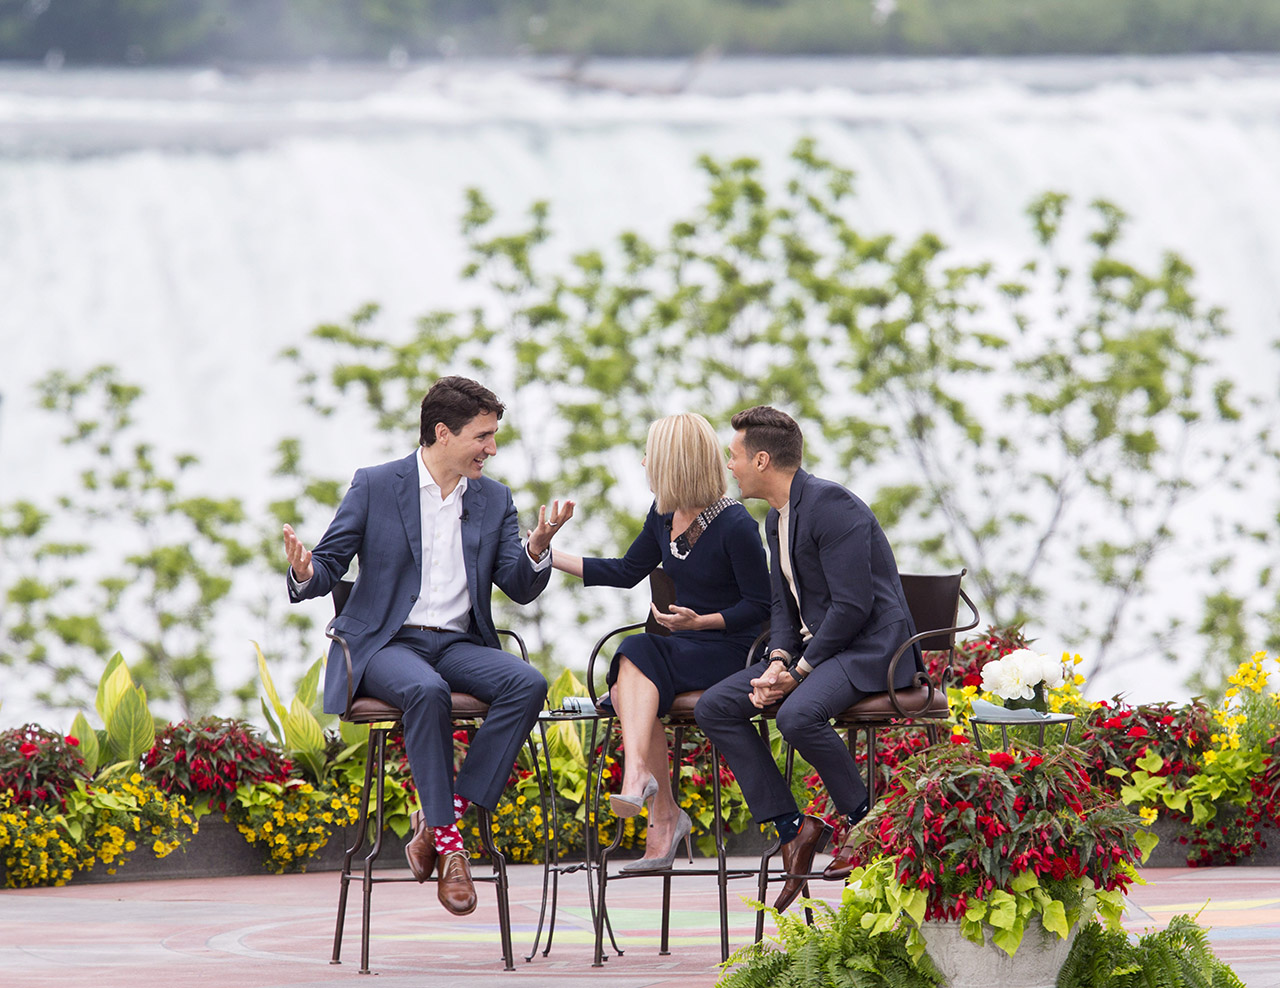 Prime Minister Justin Trudeau on Live with Kelly and Ryan